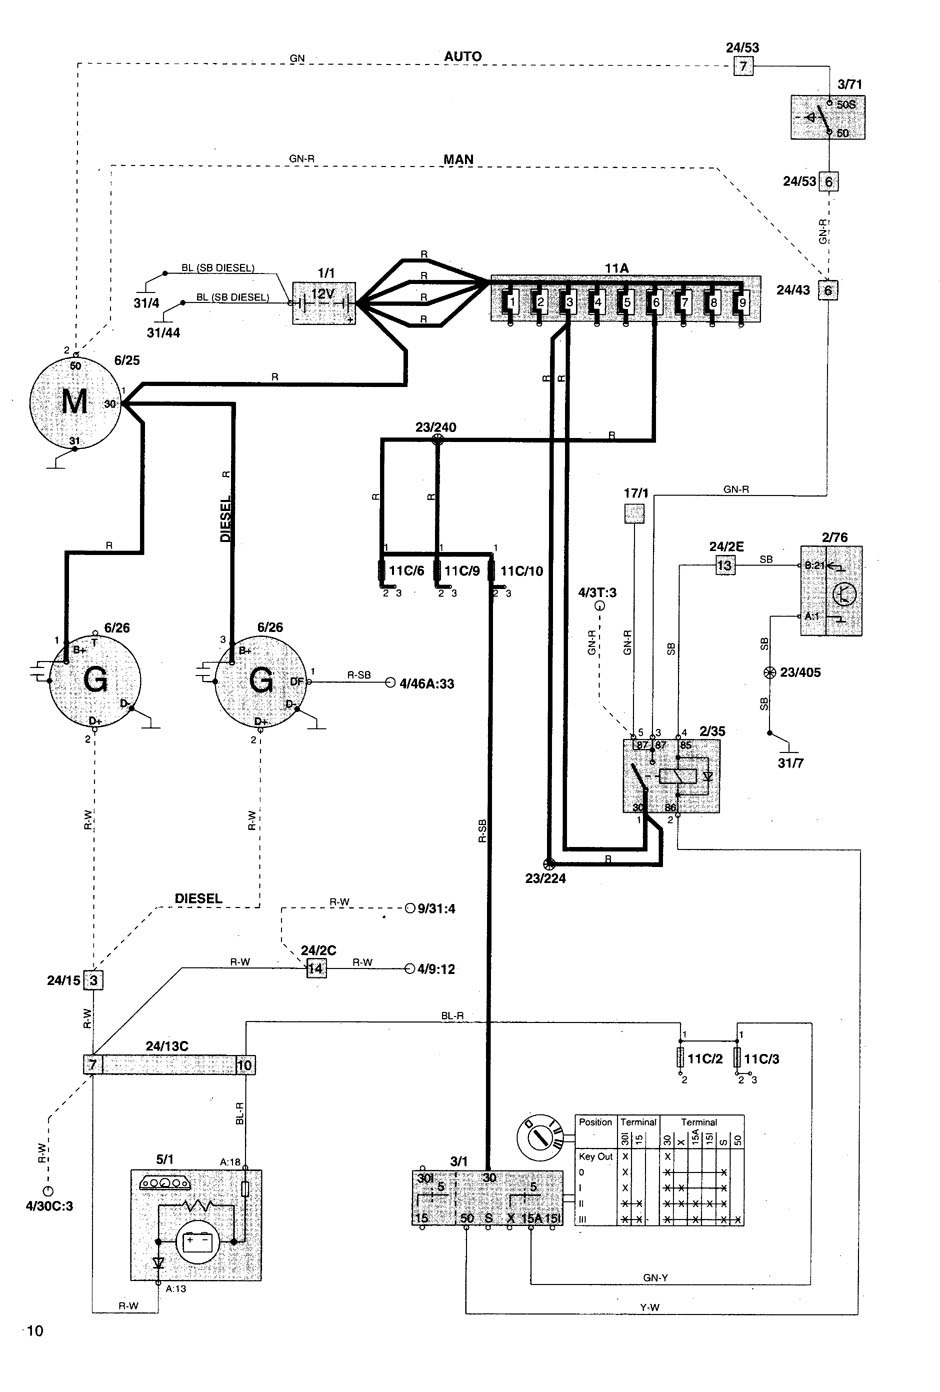 1998 Volvo Truck Wiring Diagram | Best Wiring Liry on volvo truck wiring harness, toyota truck wiring harness, automotive wiring harness, volvo engine harness, mazda 2004 wiring harness, jeep grand wagoneer wiring harness, nissan 240sx wiring harness, international scout ii wiring harness, volvo 240 alternator wiring, volvo 240 headlight wiring, ford f 150 wiring harness, volvo 1800 wiring harness, jeep cj5 wiring harness, mazda rx8 wiring harness, chevy wiring harness, ford bronco wiring harness, mazda rx7 wiring harness, mustang wiring harness, volvo s40 wiring harness, volvo 240 starter wiring,